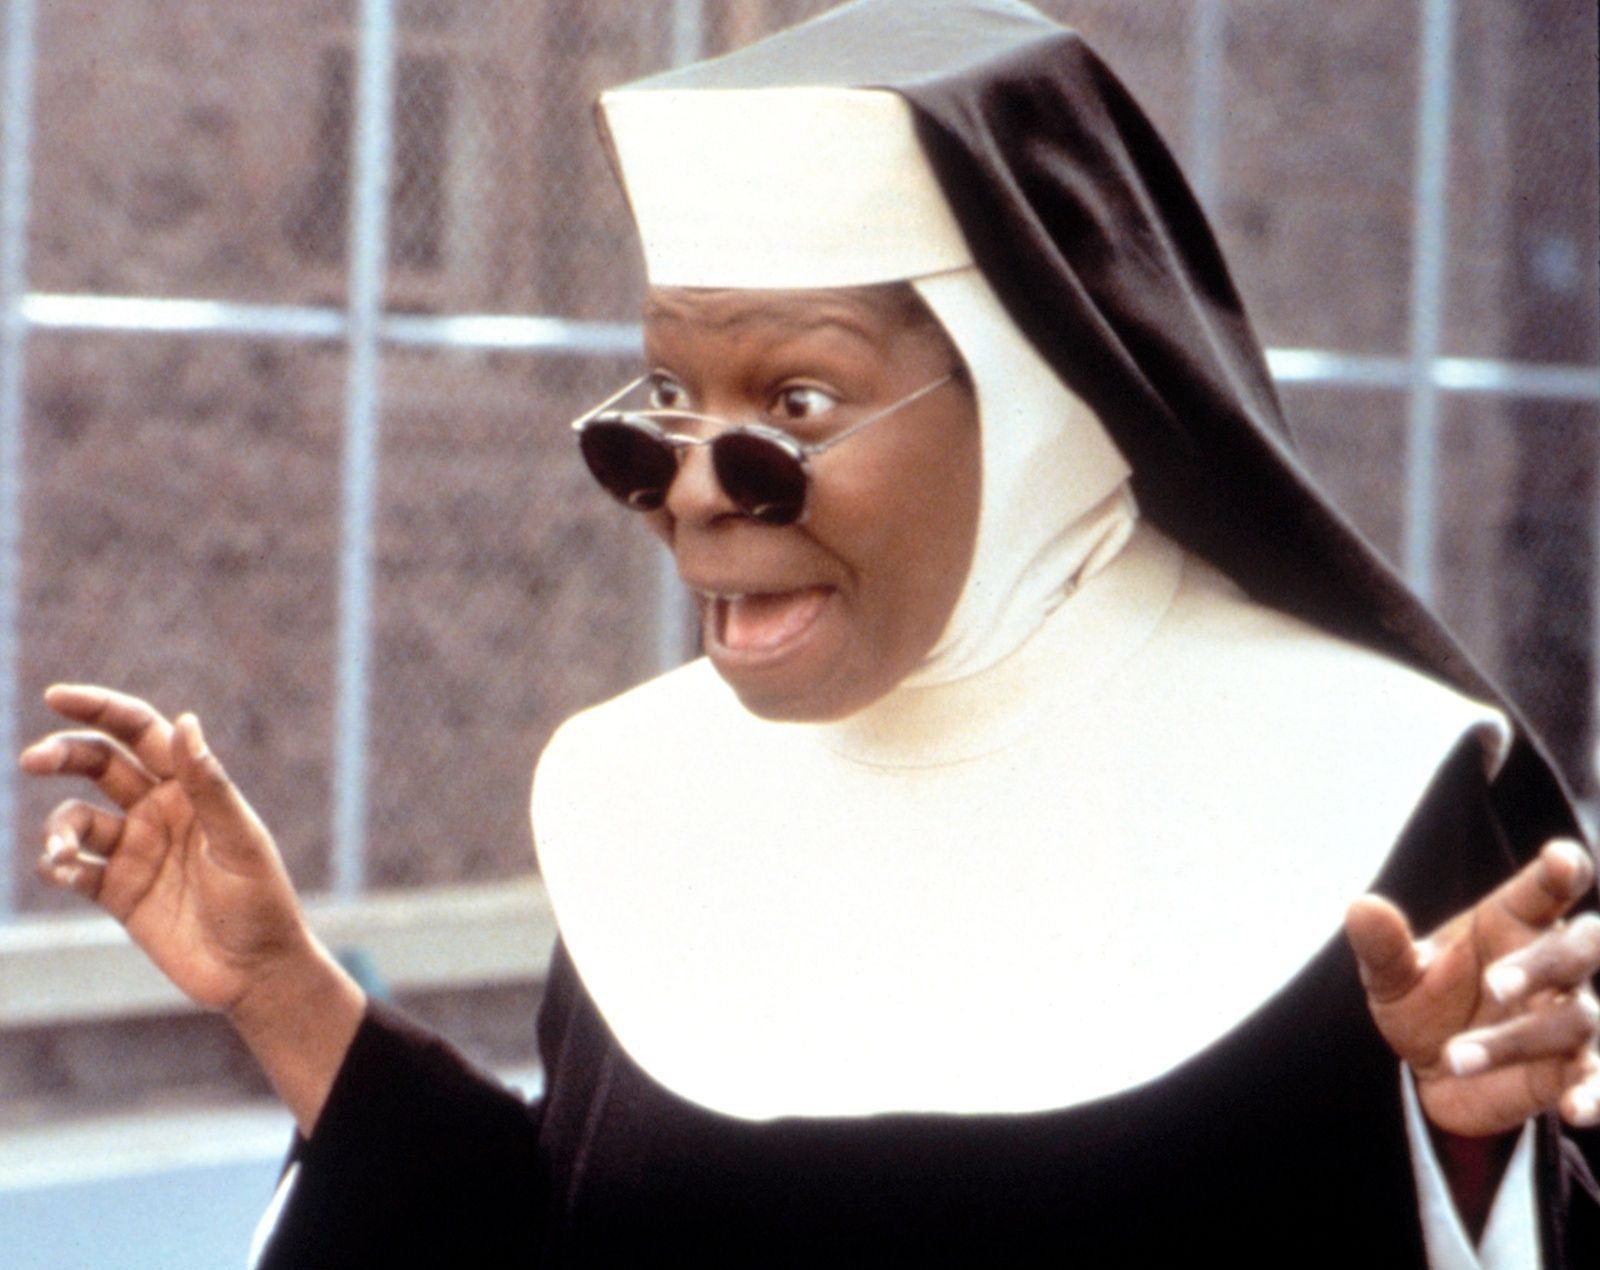 1 174 e1605867518600 We're Testifying With 20 Facts About Sister Act